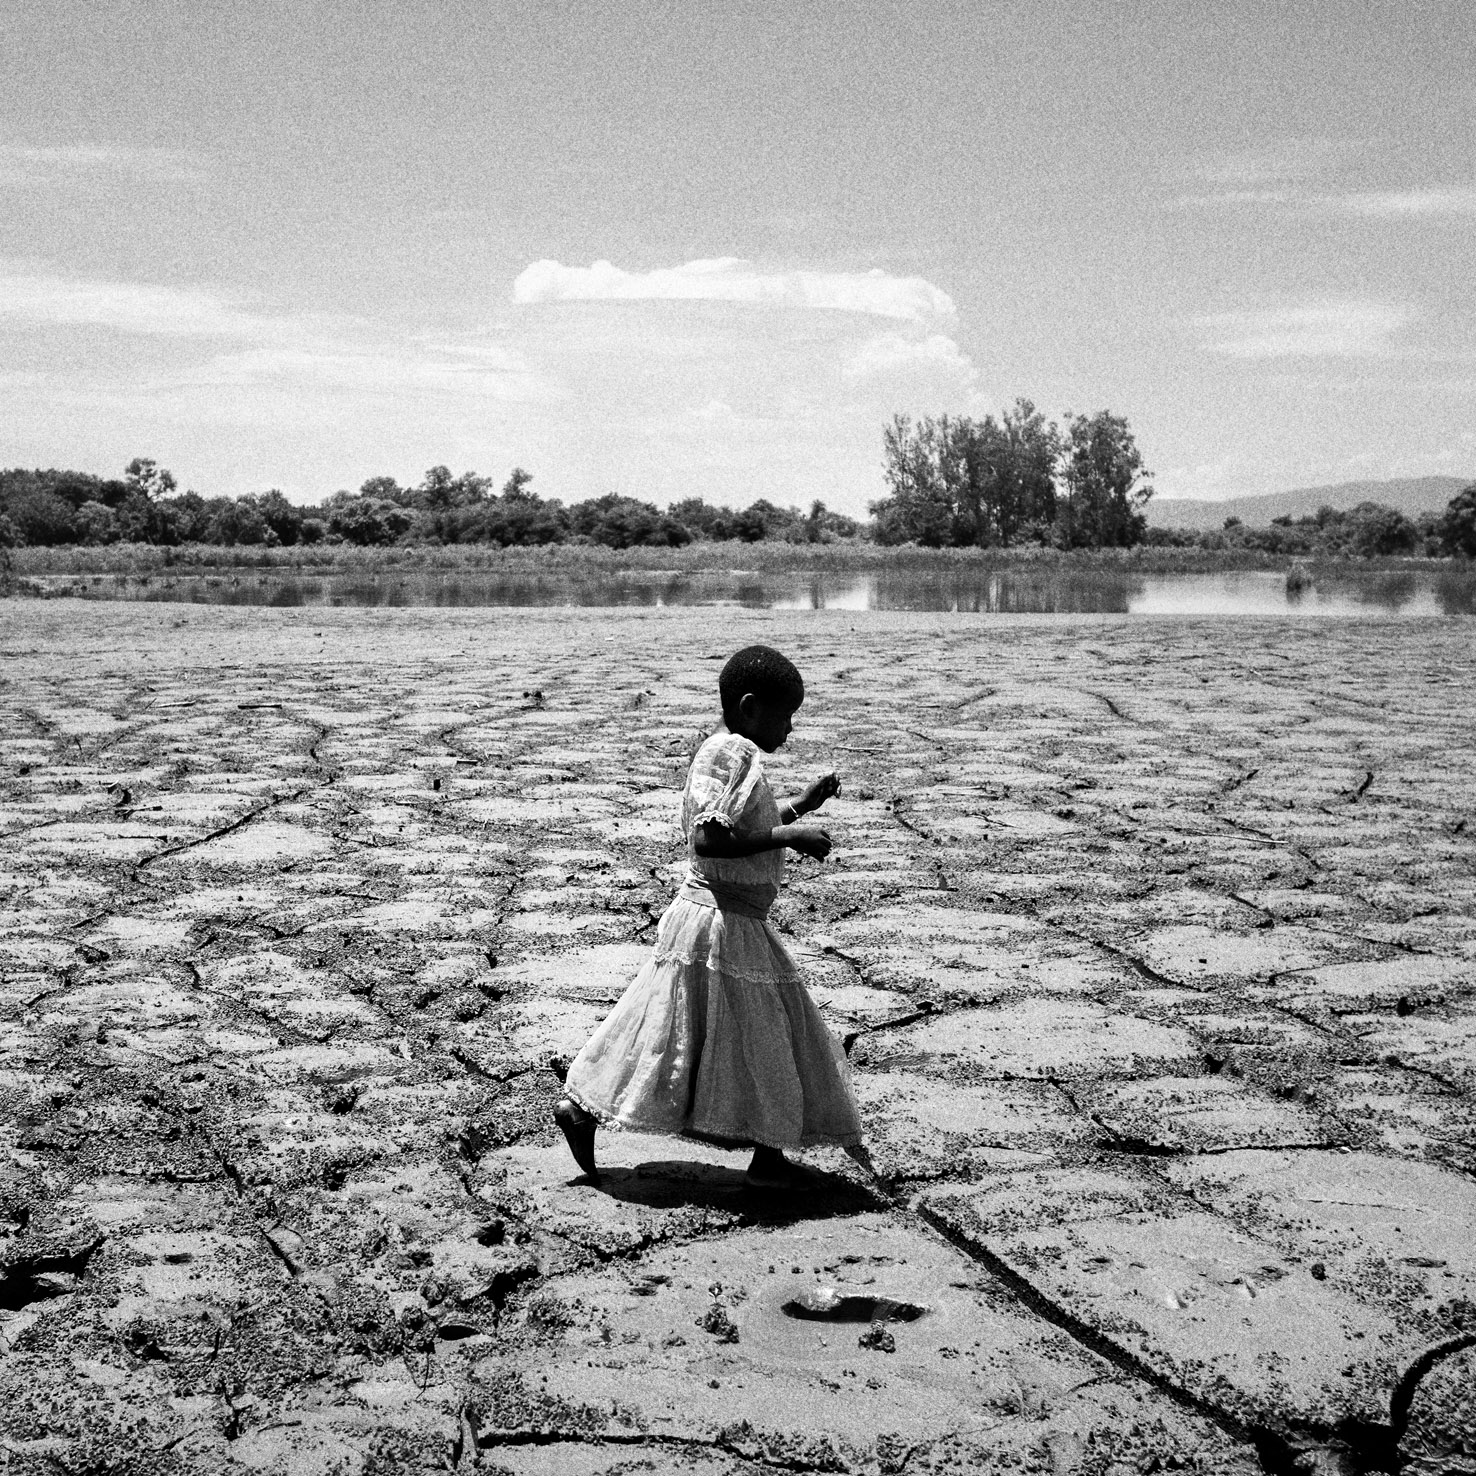 MALAWI. Nsanje District. Makhanga. February 03, 2015. Alesi Phiri, 7yo, walks on a former crop field as she looks to the thick coat of dried mud.  © Luca Sola 2015